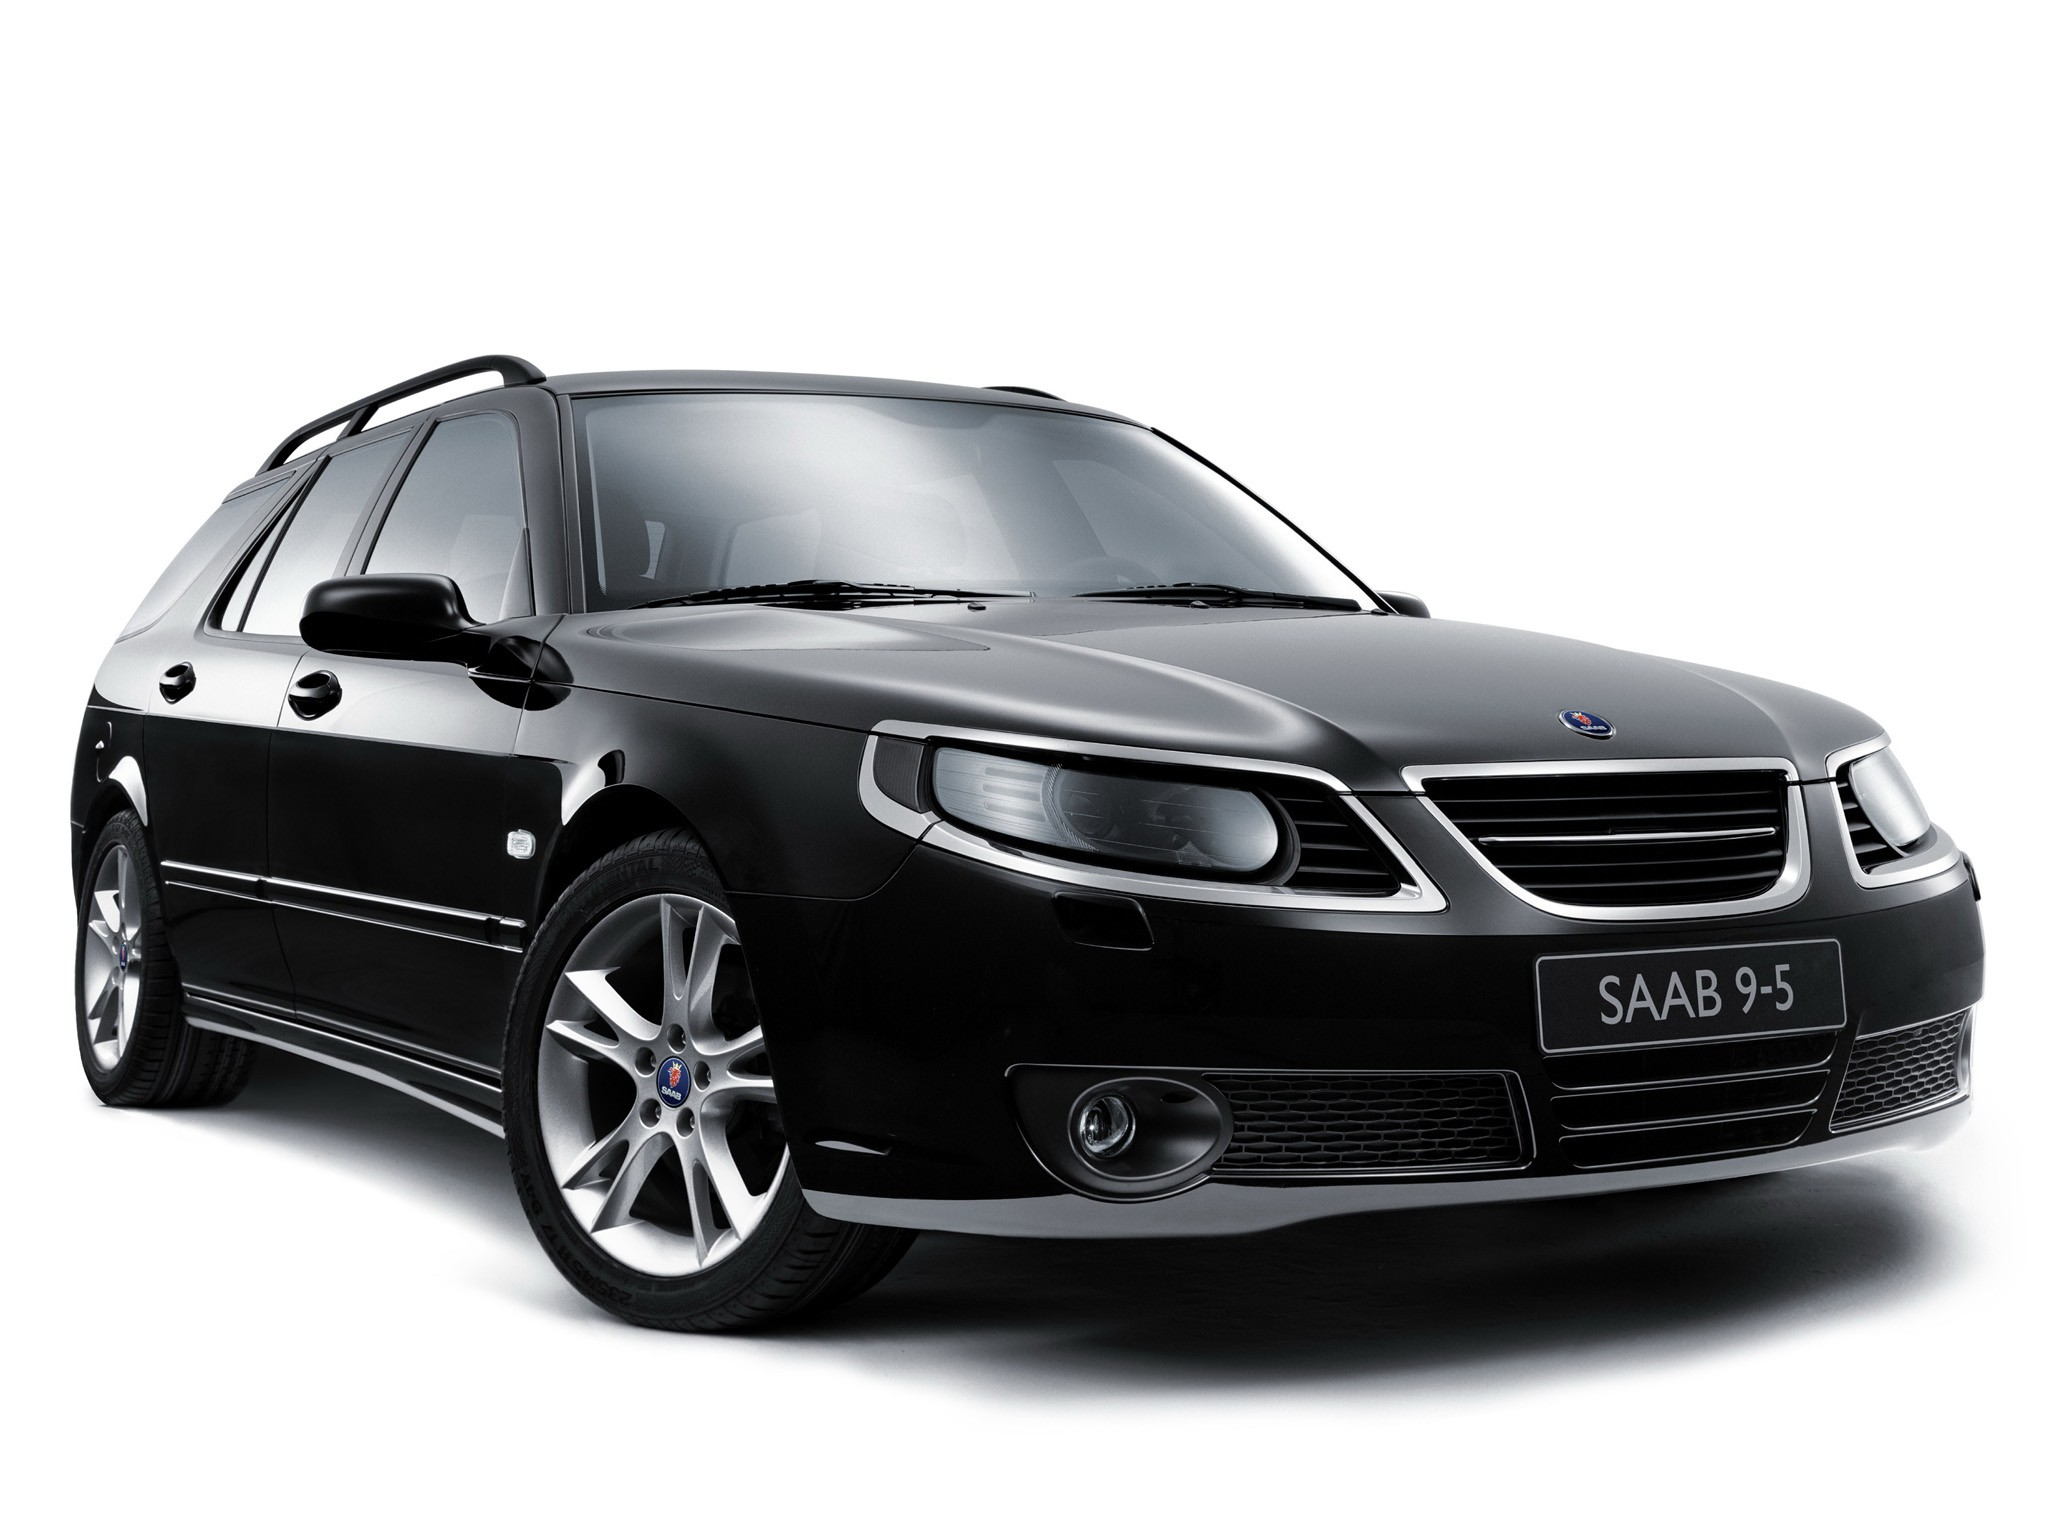 saab 9 5 sportcombi specs 2005 2006 2007 2008 2009. Black Bedroom Furniture Sets. Home Design Ideas